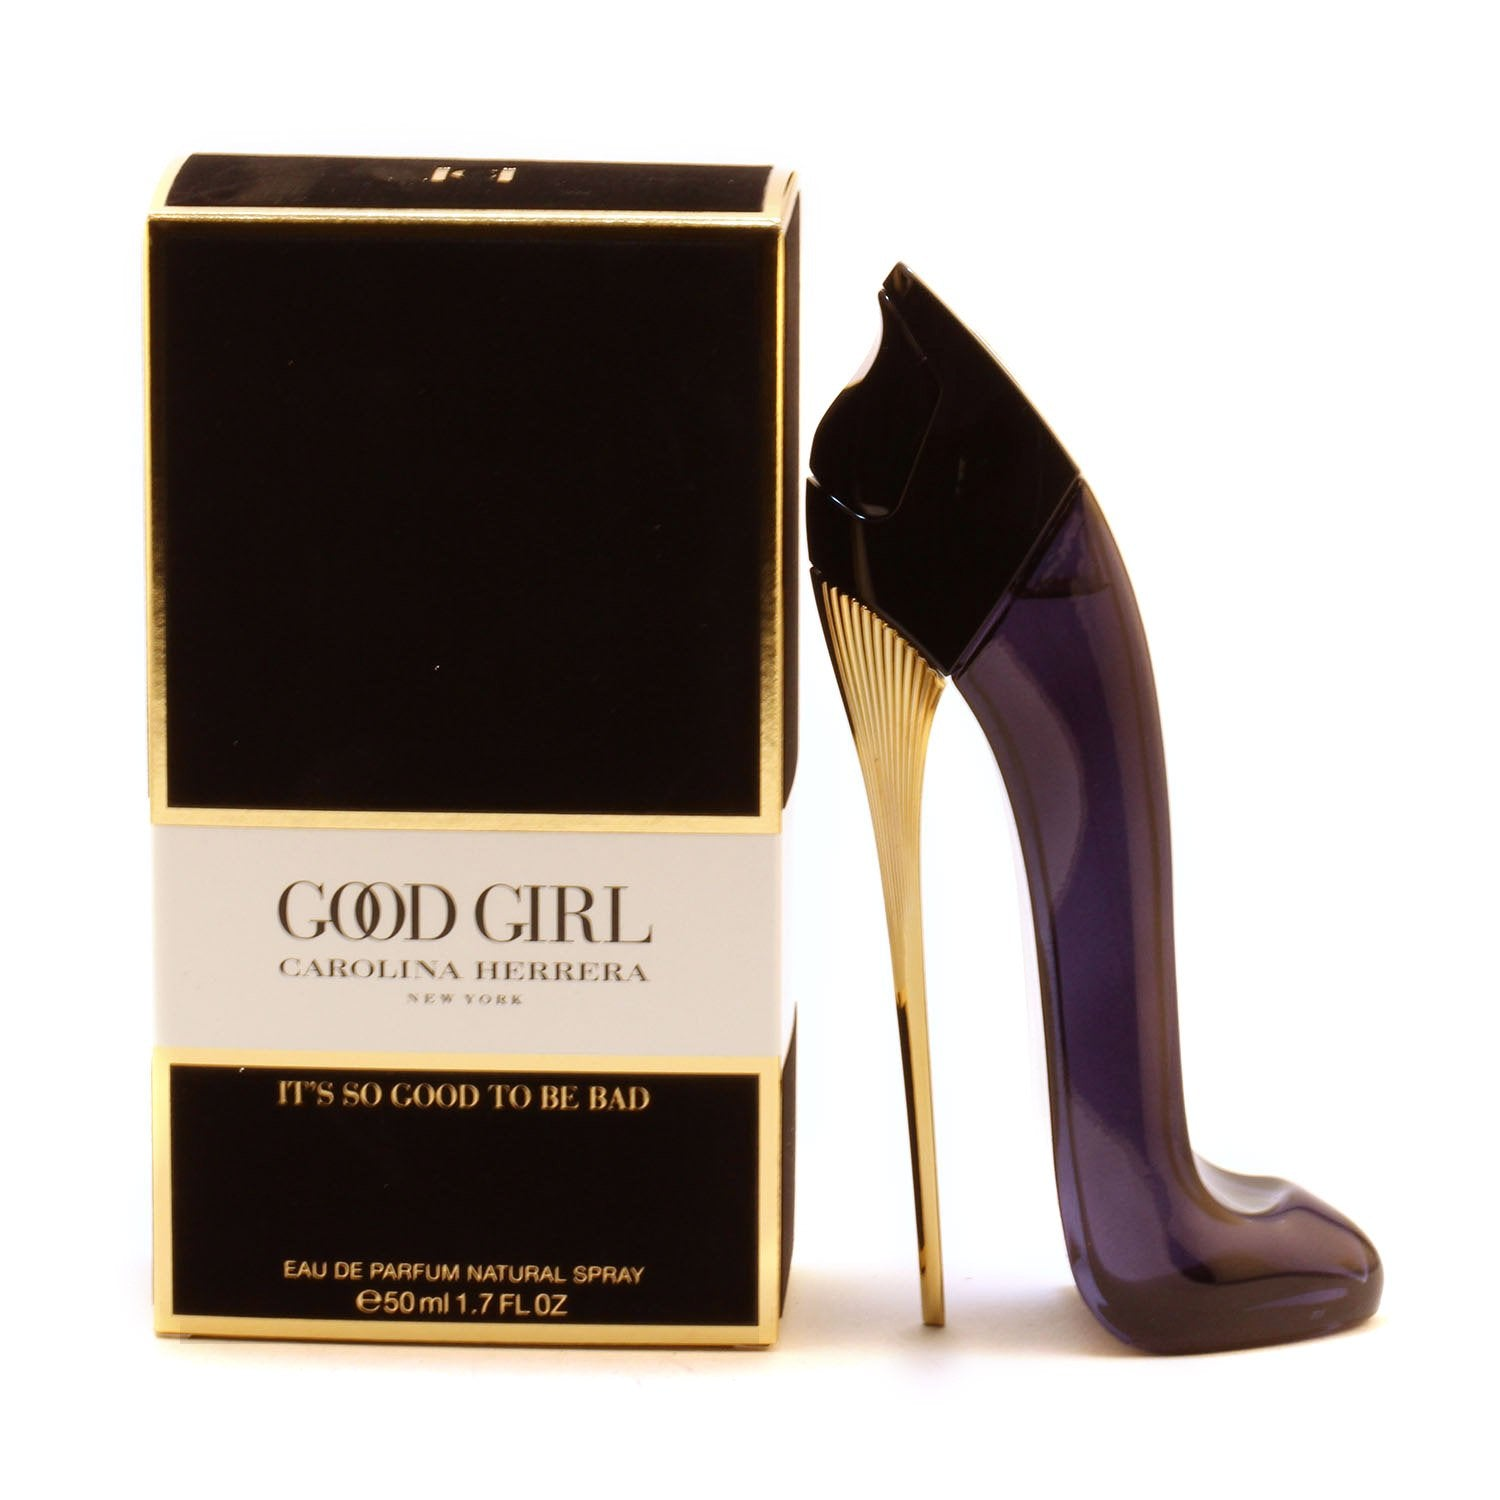 Perfume - GOOD GIRL FOR WOMEN BY CAROLINA HERRERA - EAU DE PARFUM SPRAY